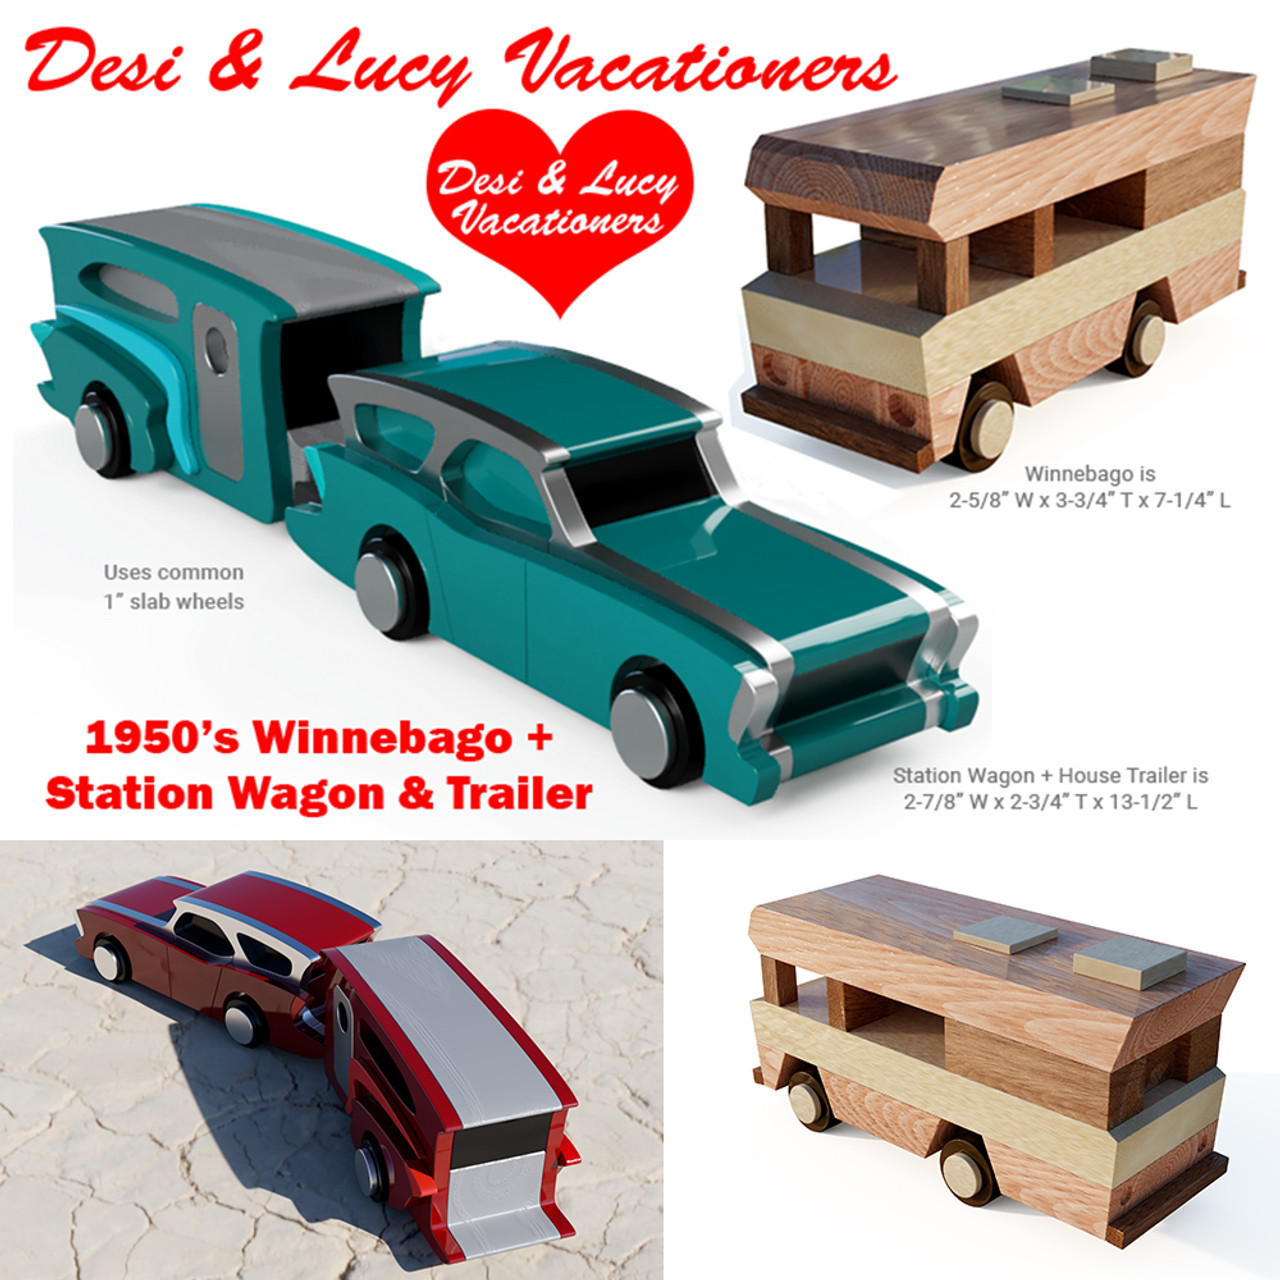 1950's chrysler station wagon + trailer + winnebago wood toy plans (3 pdf  downloads)